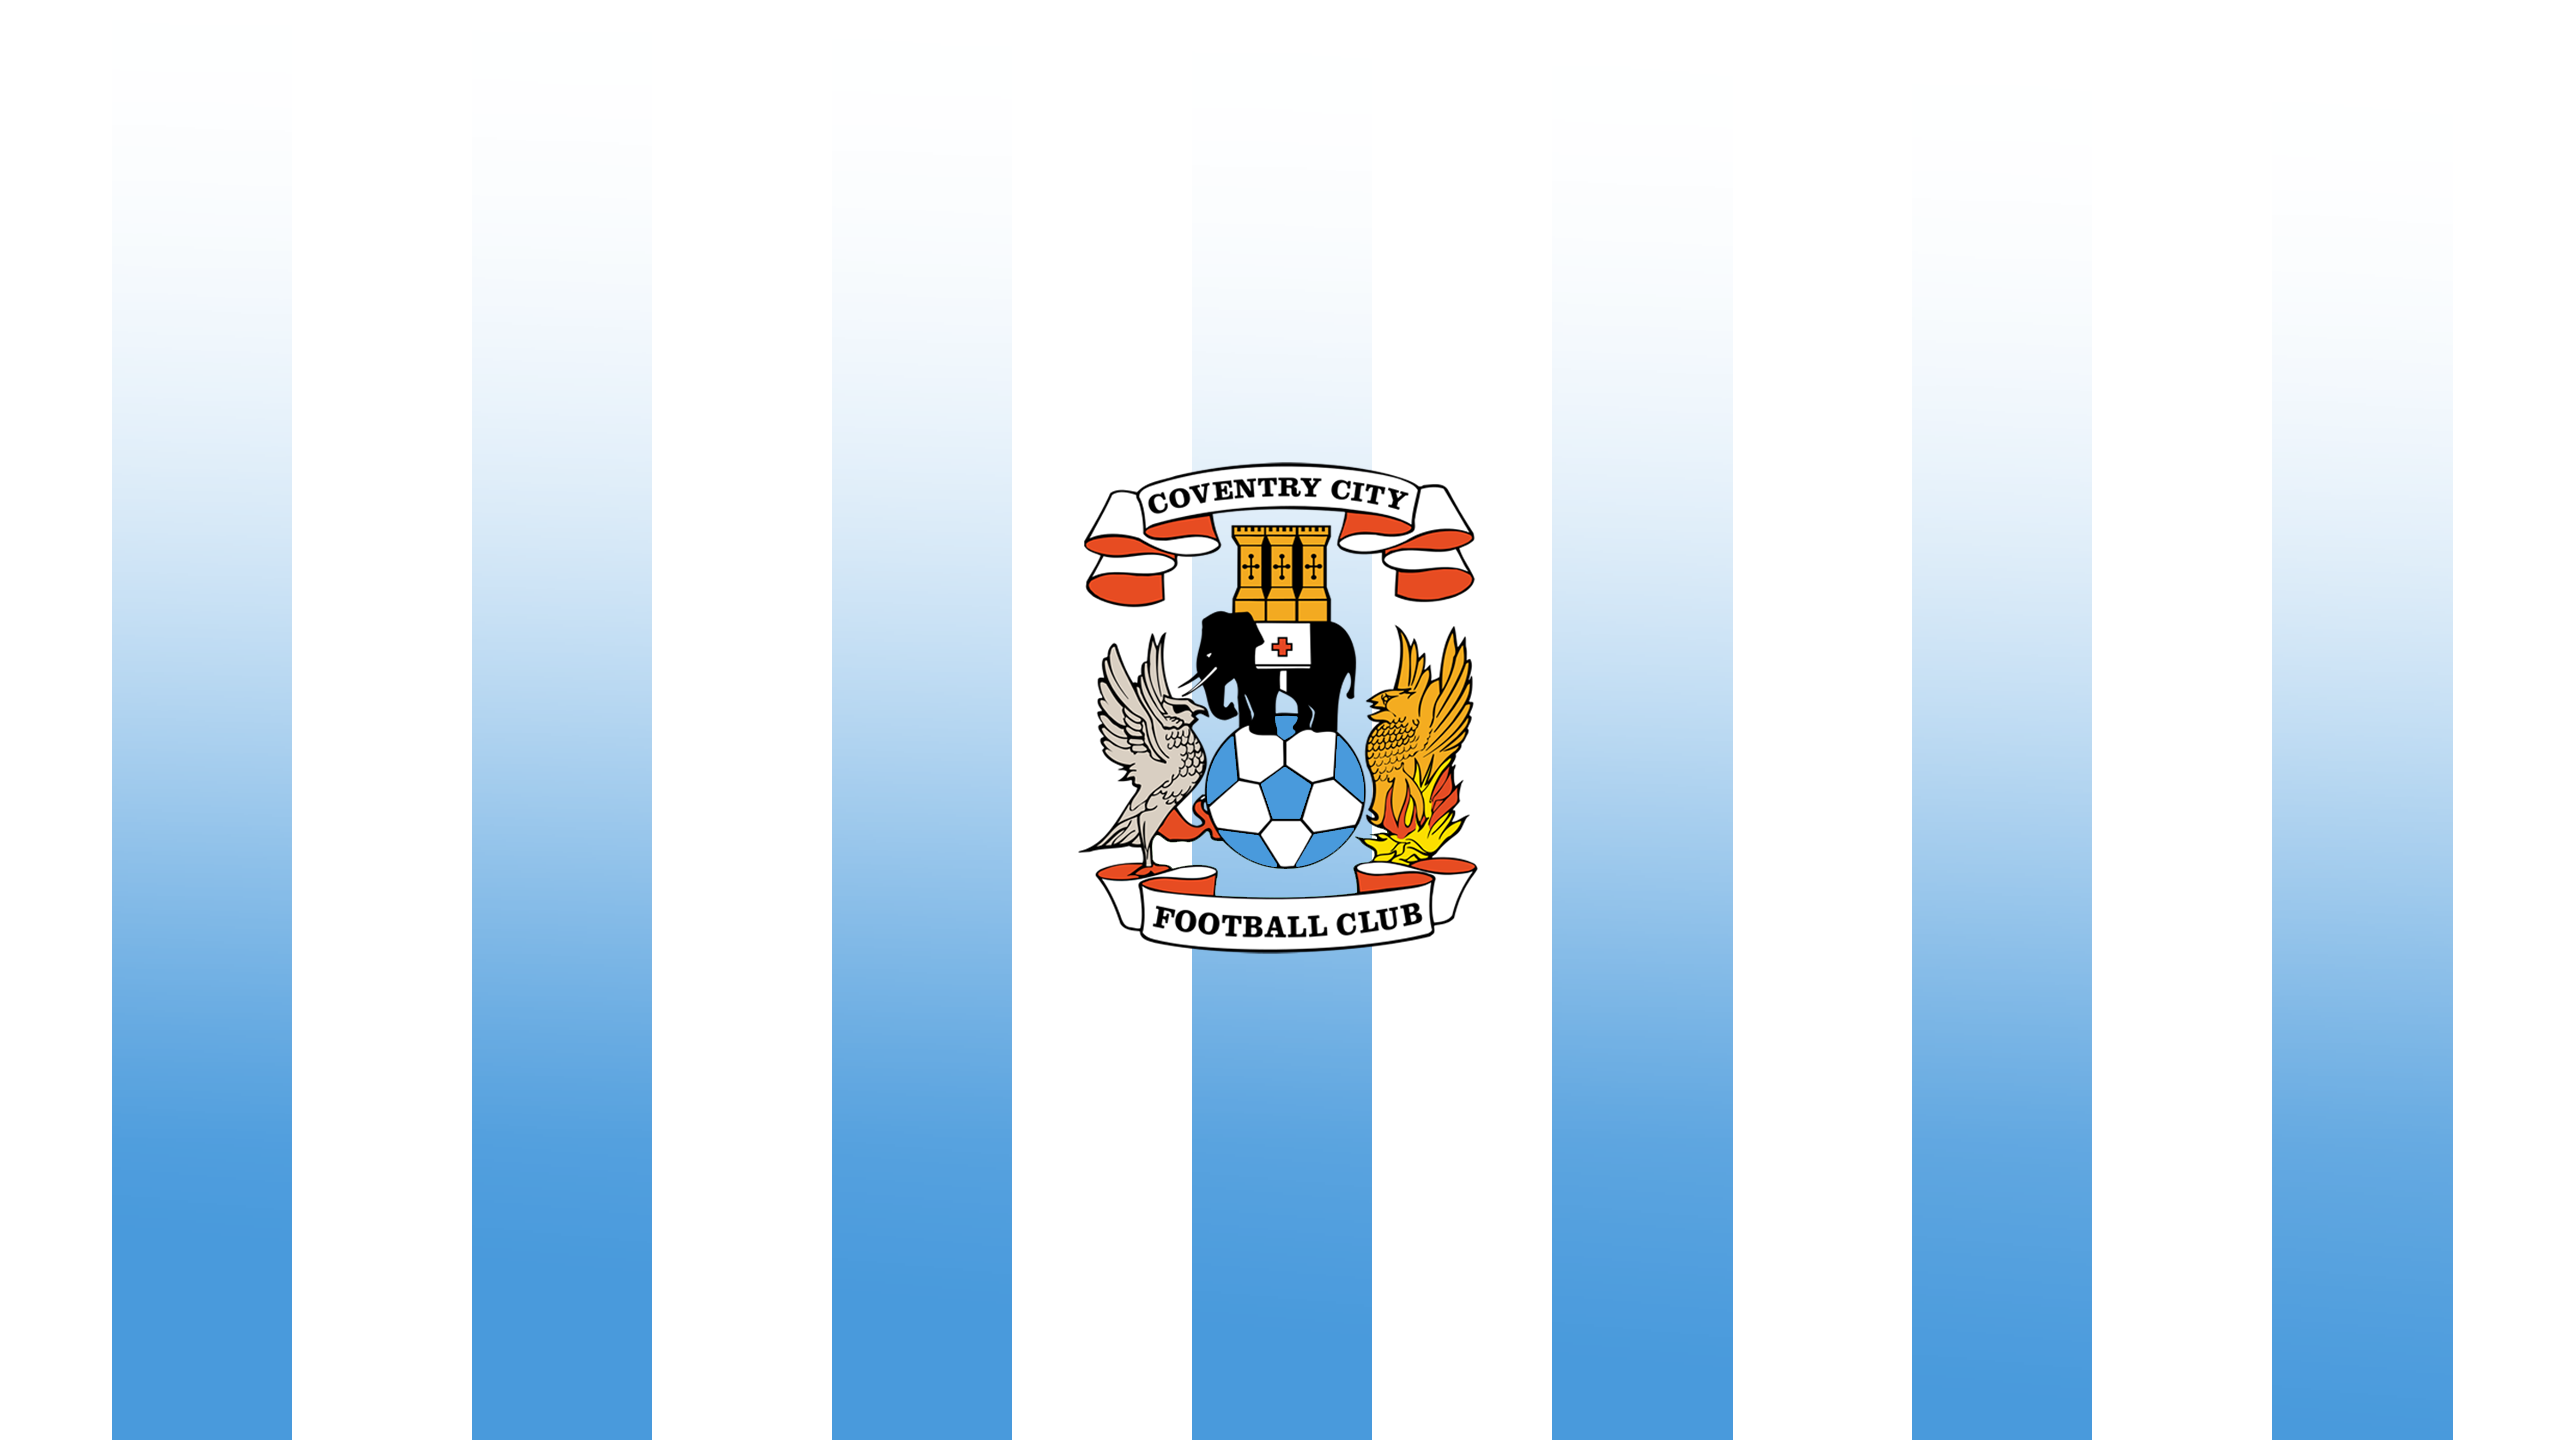 Coventry City FC \u2013 Stephen Clark (sgclark.com)